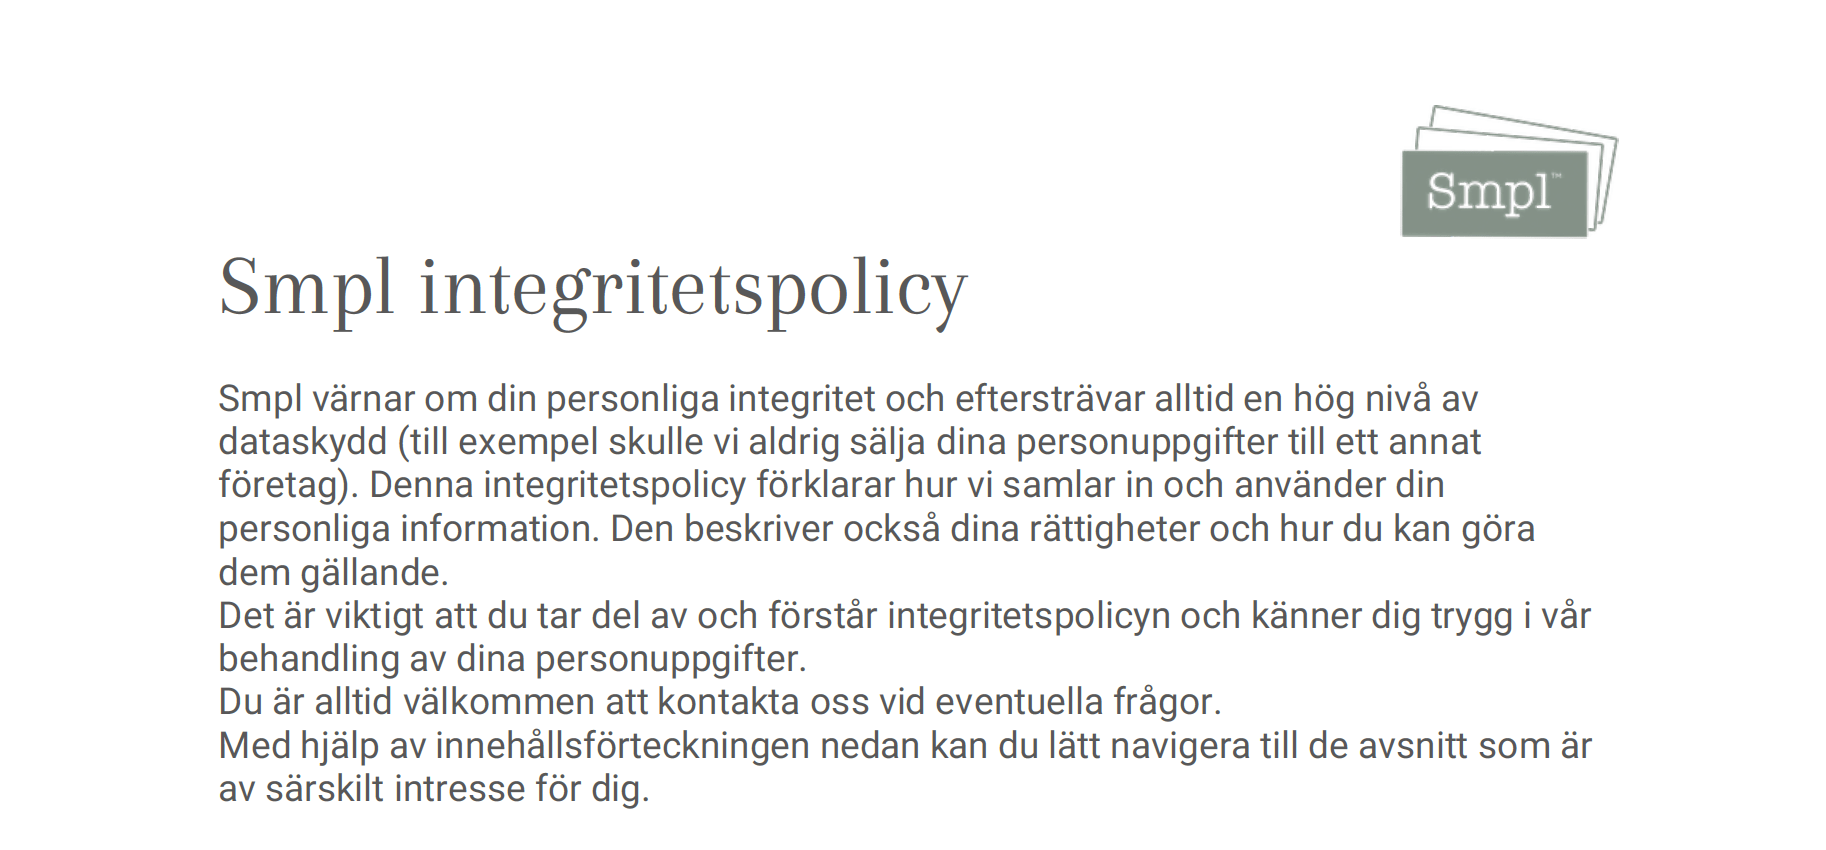 Smpl integritetspolicy